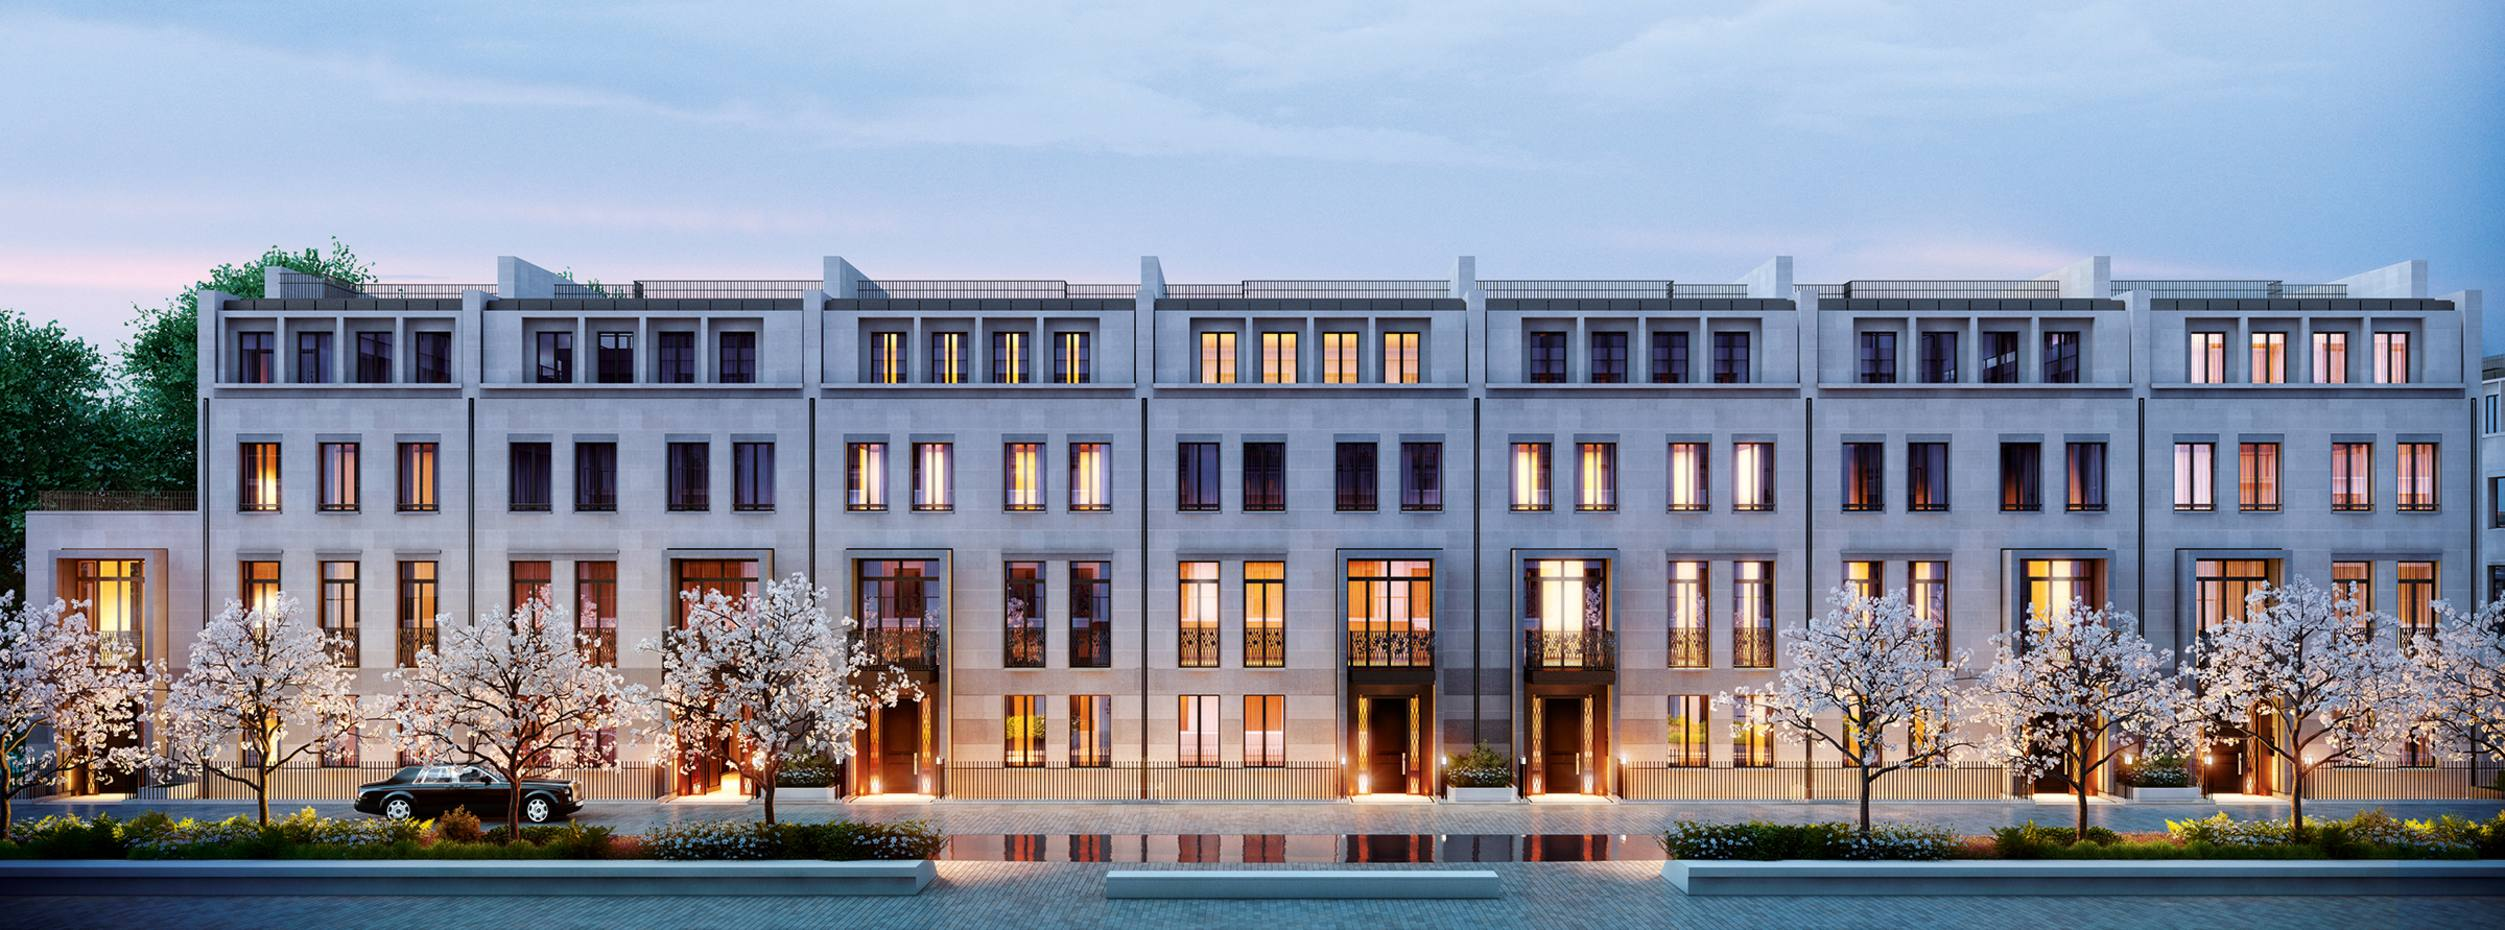 London's Chelsea Barracks includes 13 substantial townhouses, from £37m